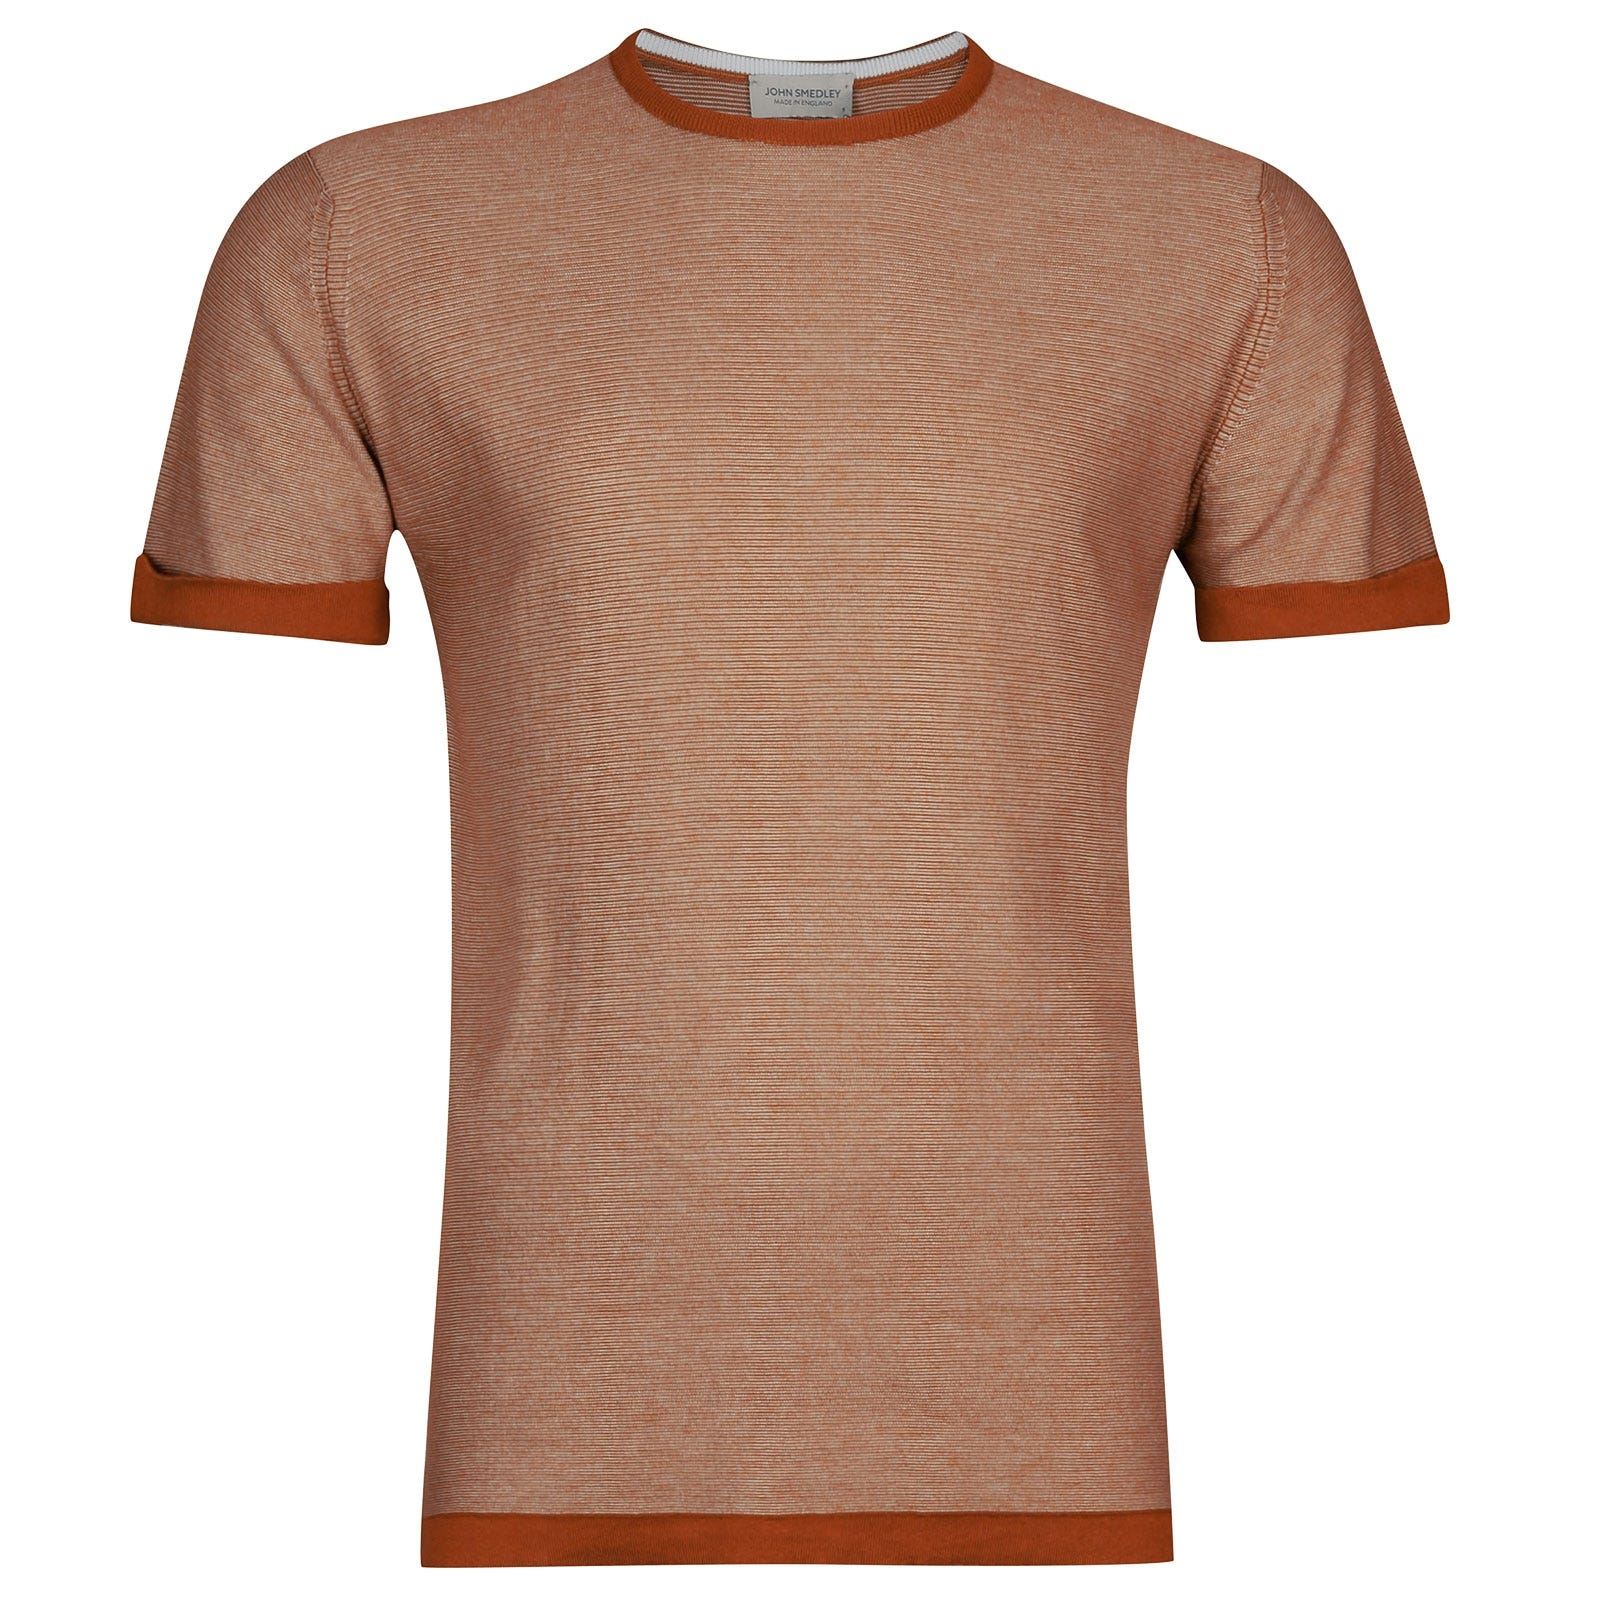 John Smedley benhope Sea Island Cotton T-shirt in Flare